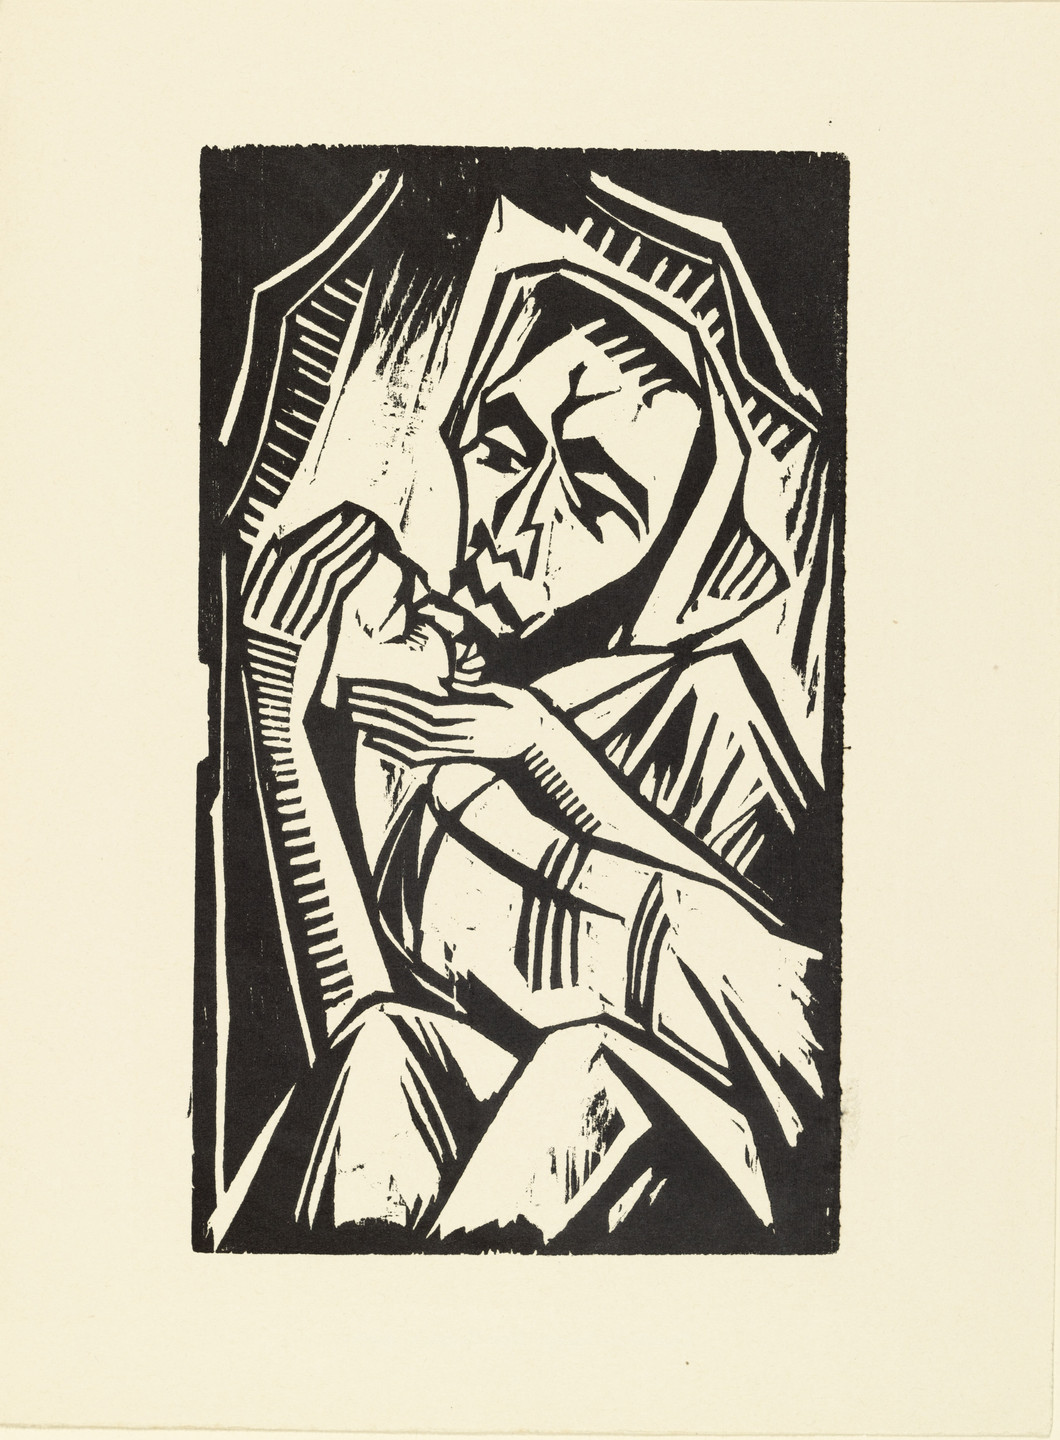 Max Pechstein. Mother (Mutter) (plate, loose leaf) from the periodical Das Kunstblatt, vol. 2, no. 6 (Jun 1918). 1918 (executed 1917)